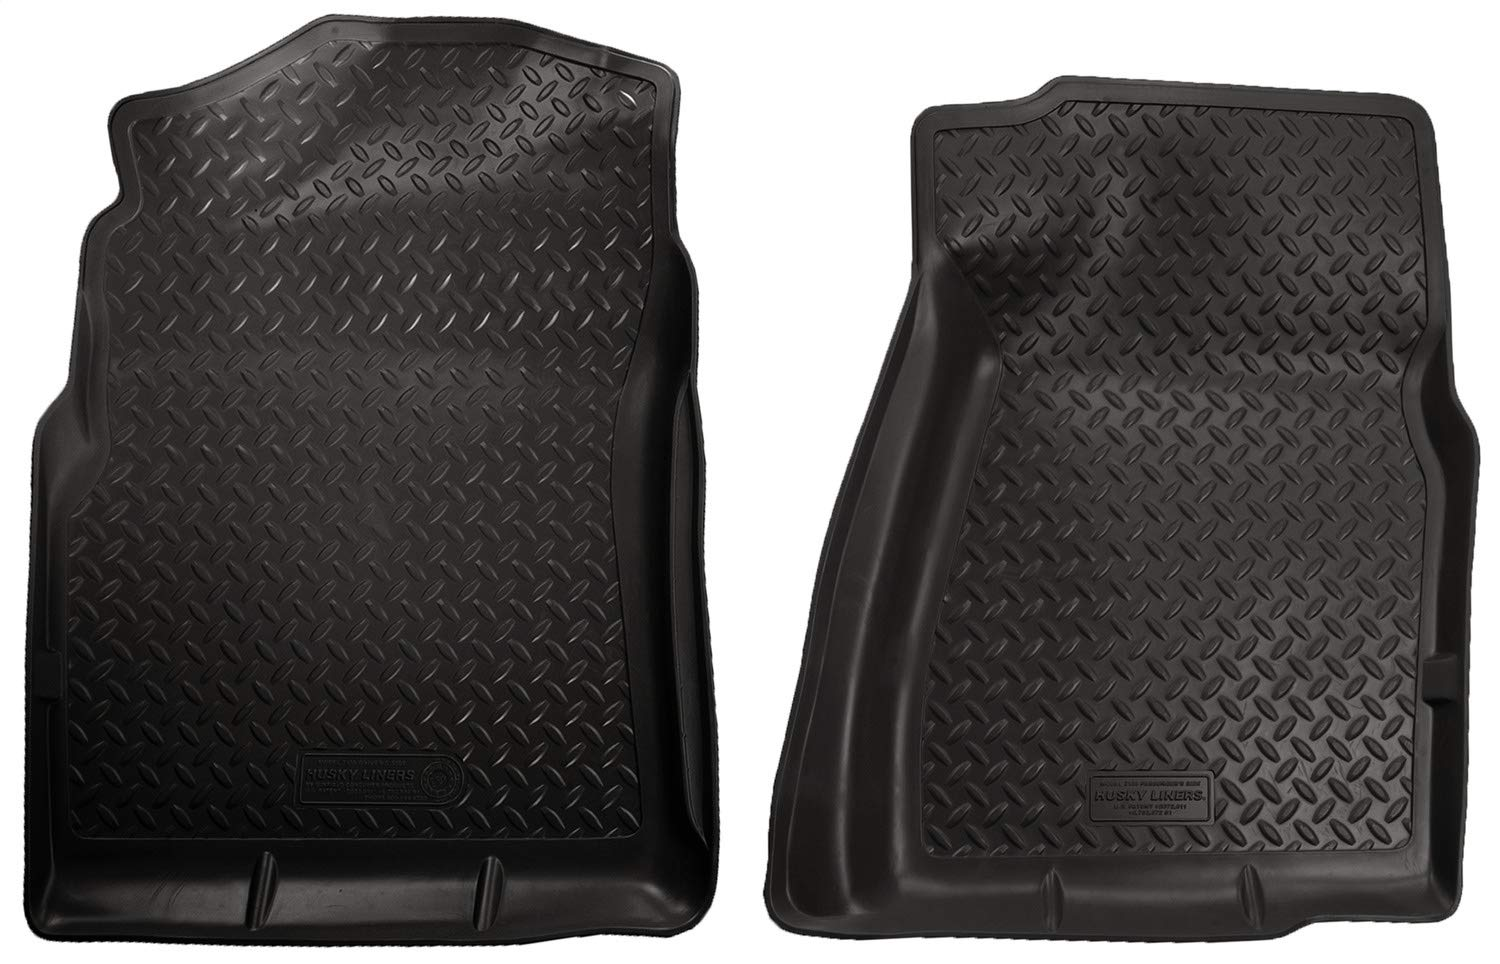 Husky Liners Fits 2007-13 Chevrolet Silverado/GMC Sierra 1500 Standard Cab, 2007-14 Chevrolet Silverado/GMC Sierra 2500/3500 Standard Cab Classic Style Front Floor Mats